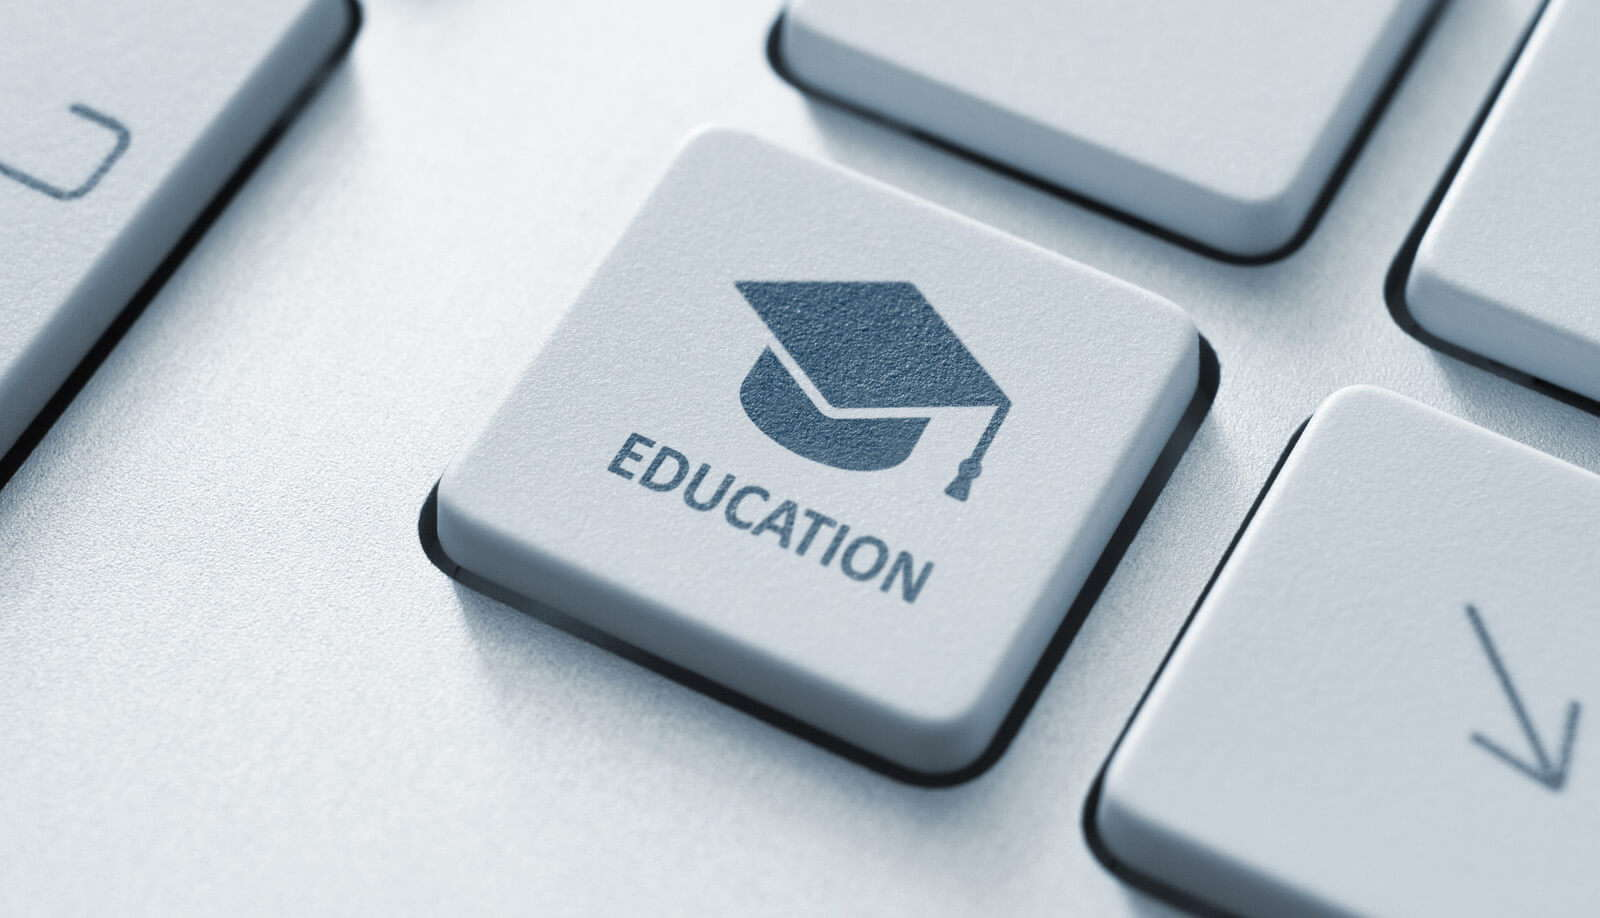 Full scholarship-Education Technology in Huzhou